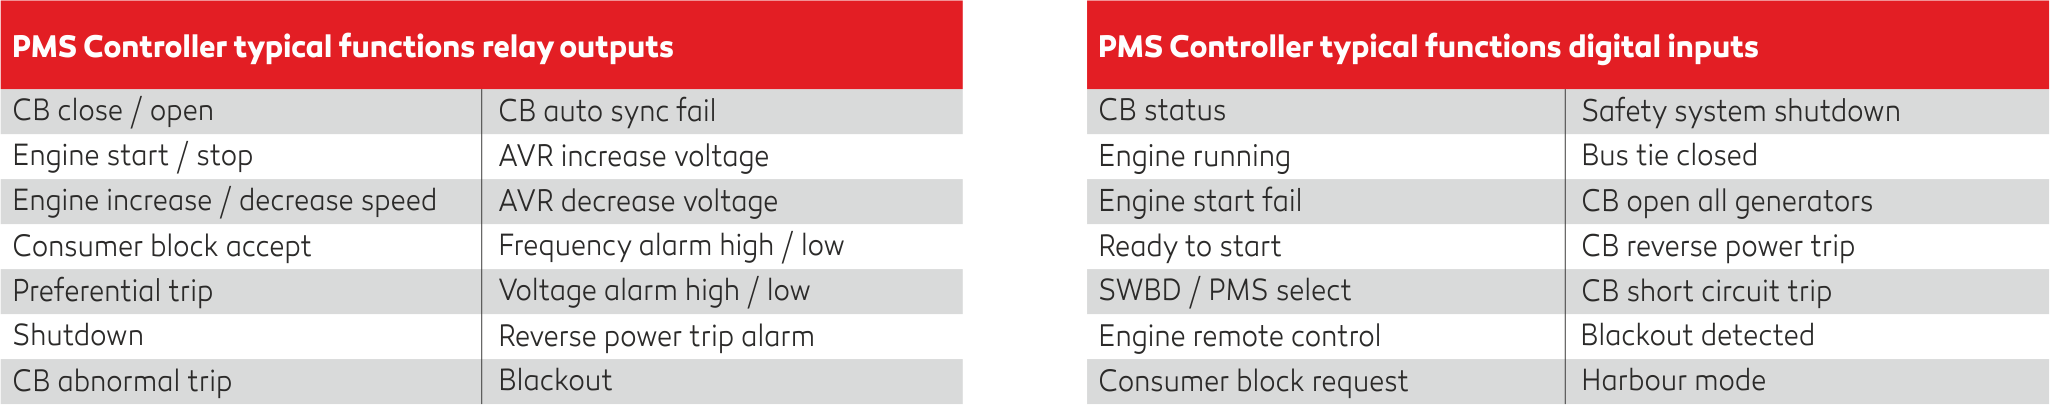 Power Management System Praxis Automation Technology Bv Low Voltage Alarm Circuit The Pms Controller Is Connected To Operator Panel Via An I O Cable Standard Available In Two Lengths 3m And 5m